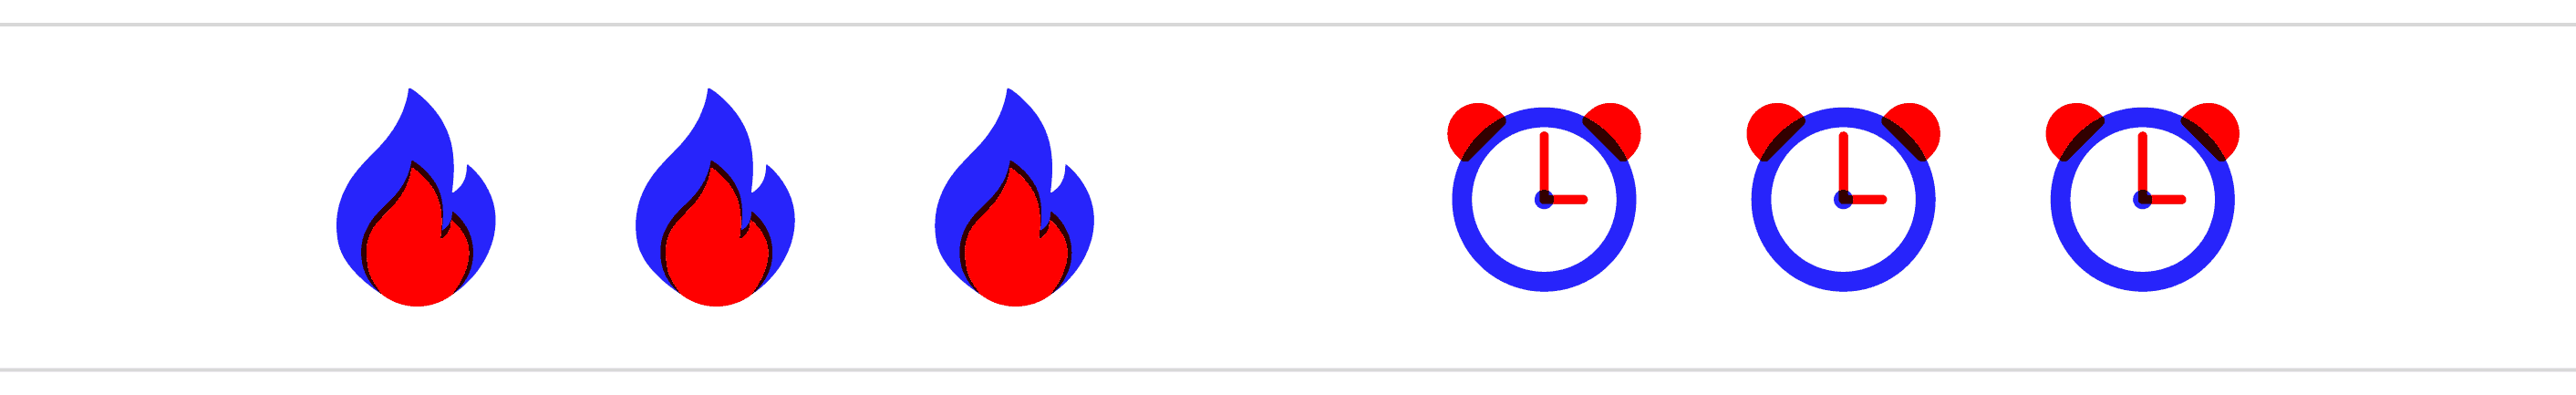 Icons of red and blue flames and clocks, three flames highlighted and three clocks highlighted